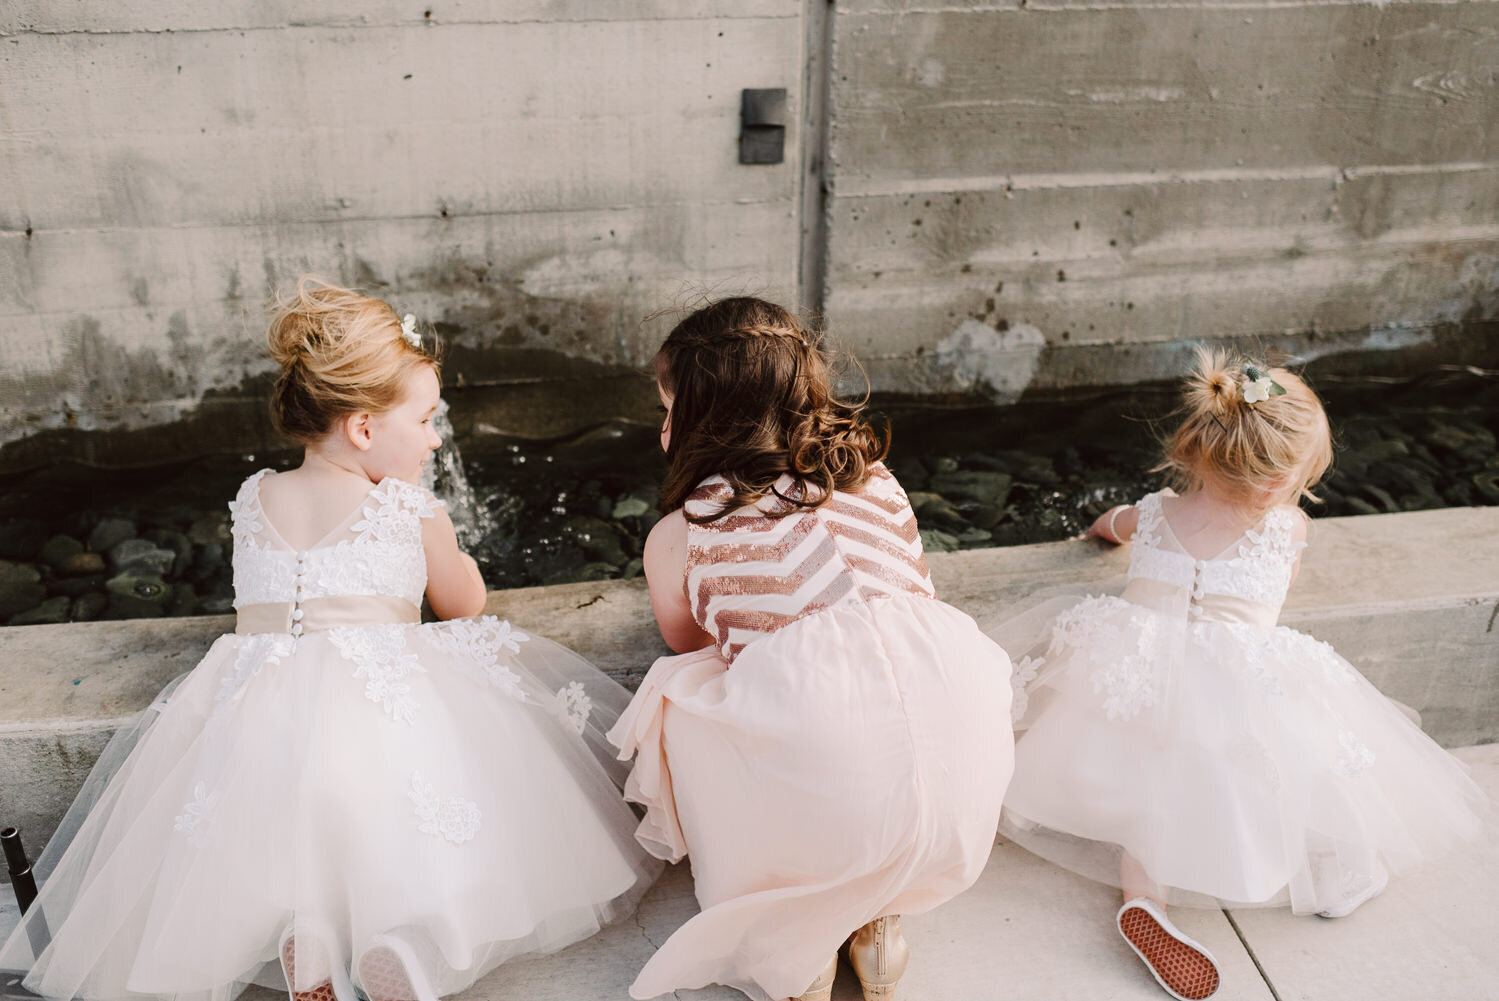 clementine-nashville-wedding-27